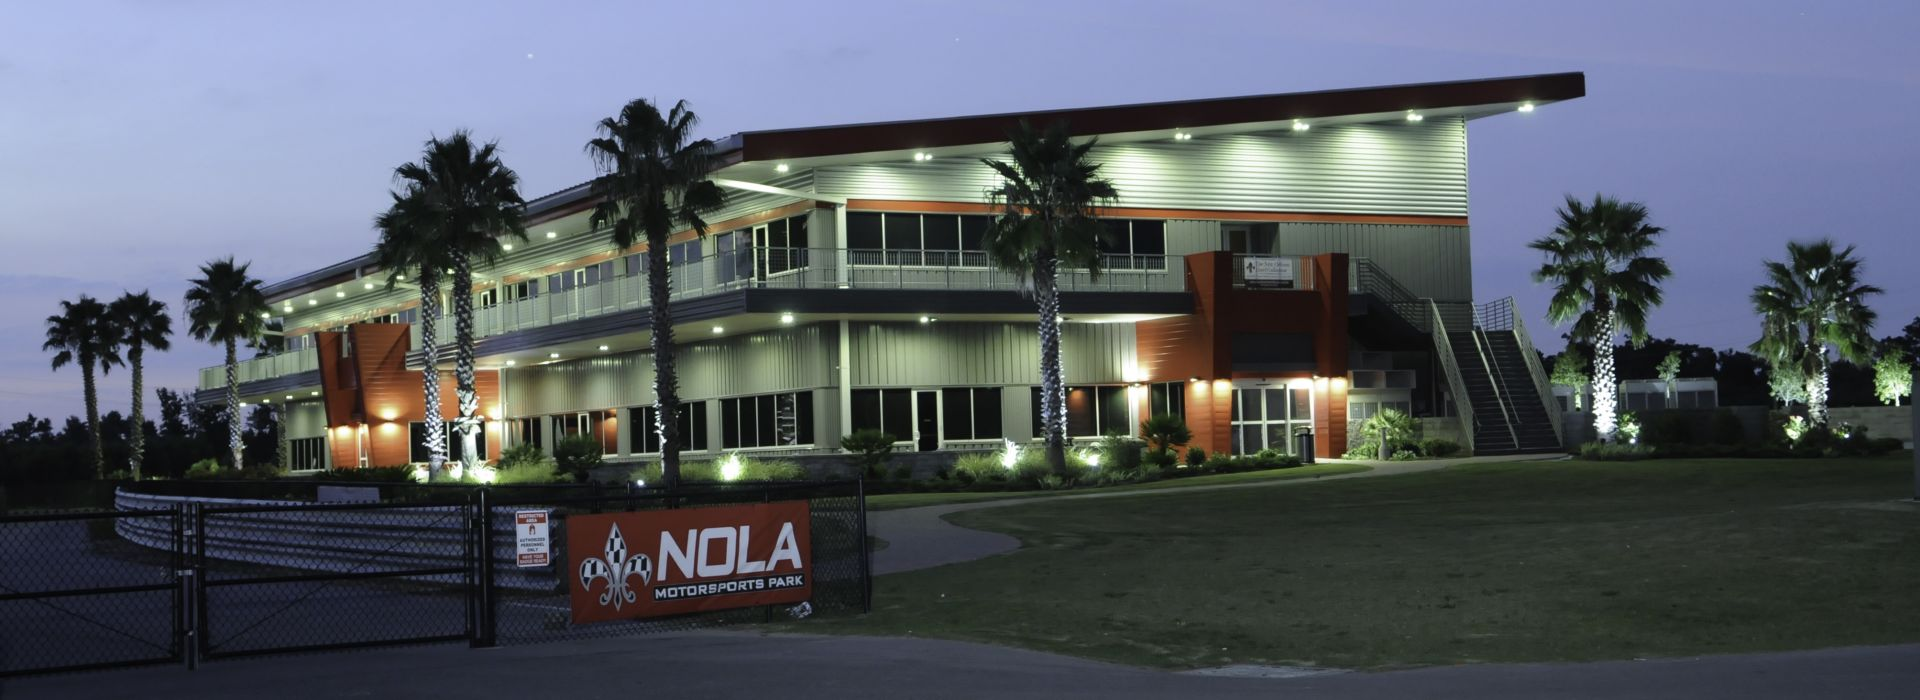 Exterior of the NOLA Motorsports Park in Jefferson Parish, LA